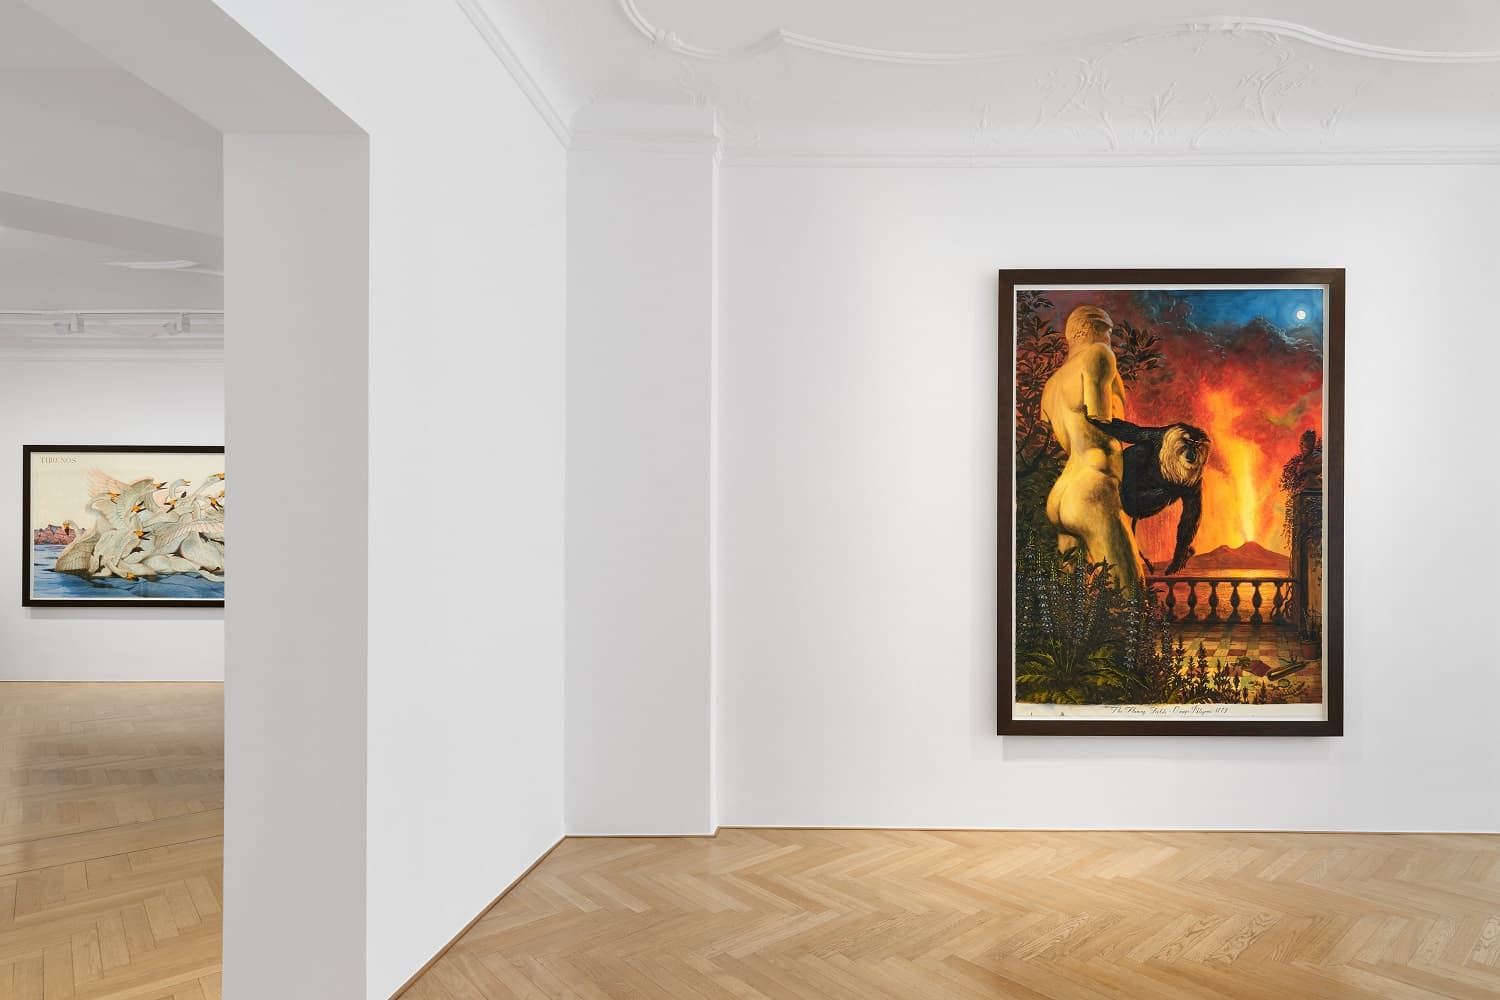 Walton Ford, Aquarelle, Galerie Max Hetzler, Berlin, 18 June – 14 August 2021. Courtesy of the artist and Galerie Max Hetzler, Berlin | Paris | London © Walton Ford. Photo: def image